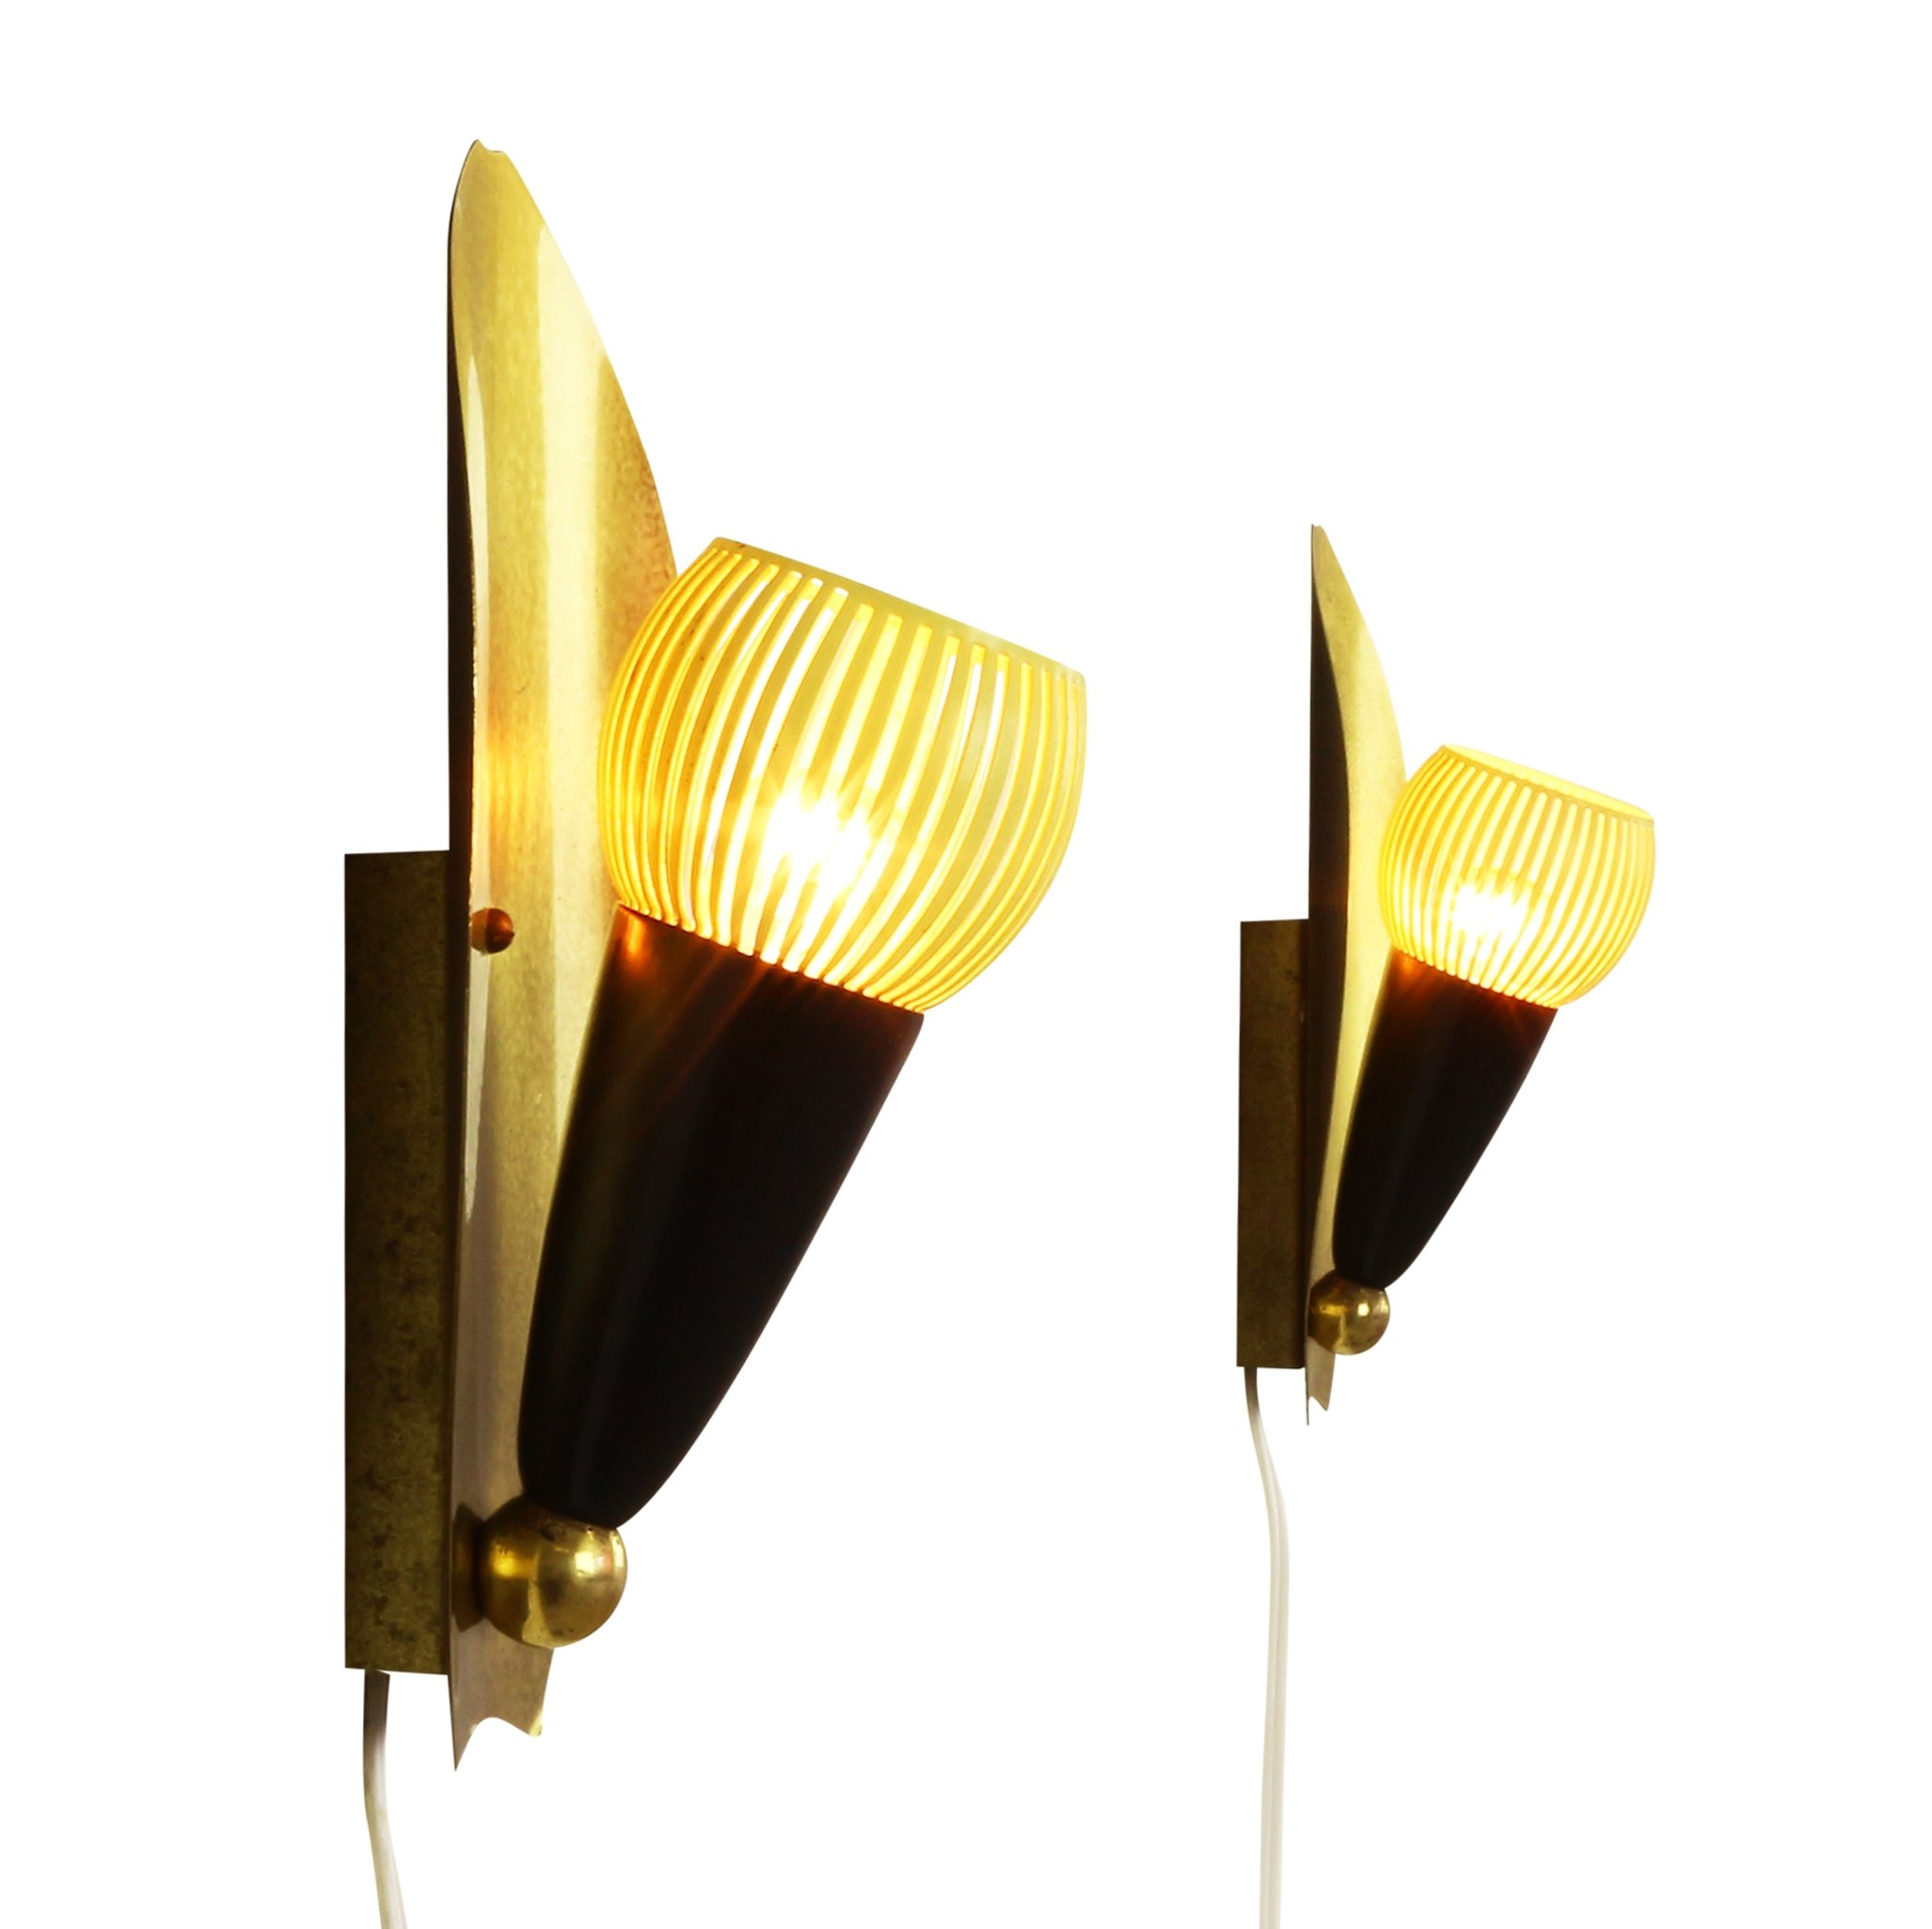 Set of two sophisticated art deco style wall lights, 1950s | #1129